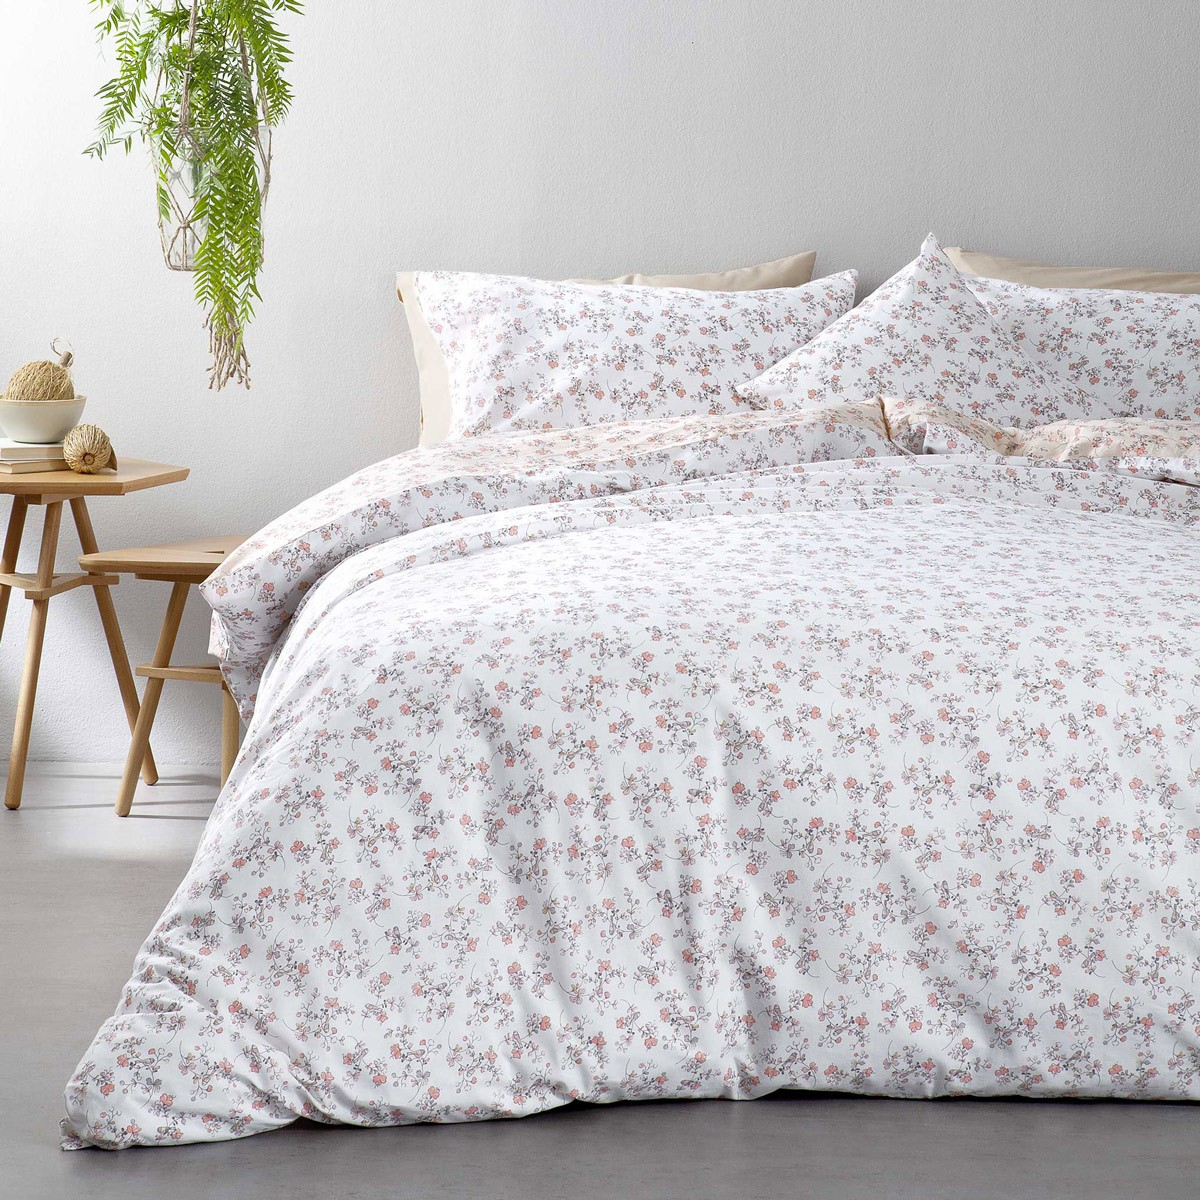 Κουβερλί Μονό Nima Bed Linen Secret Garden Pink